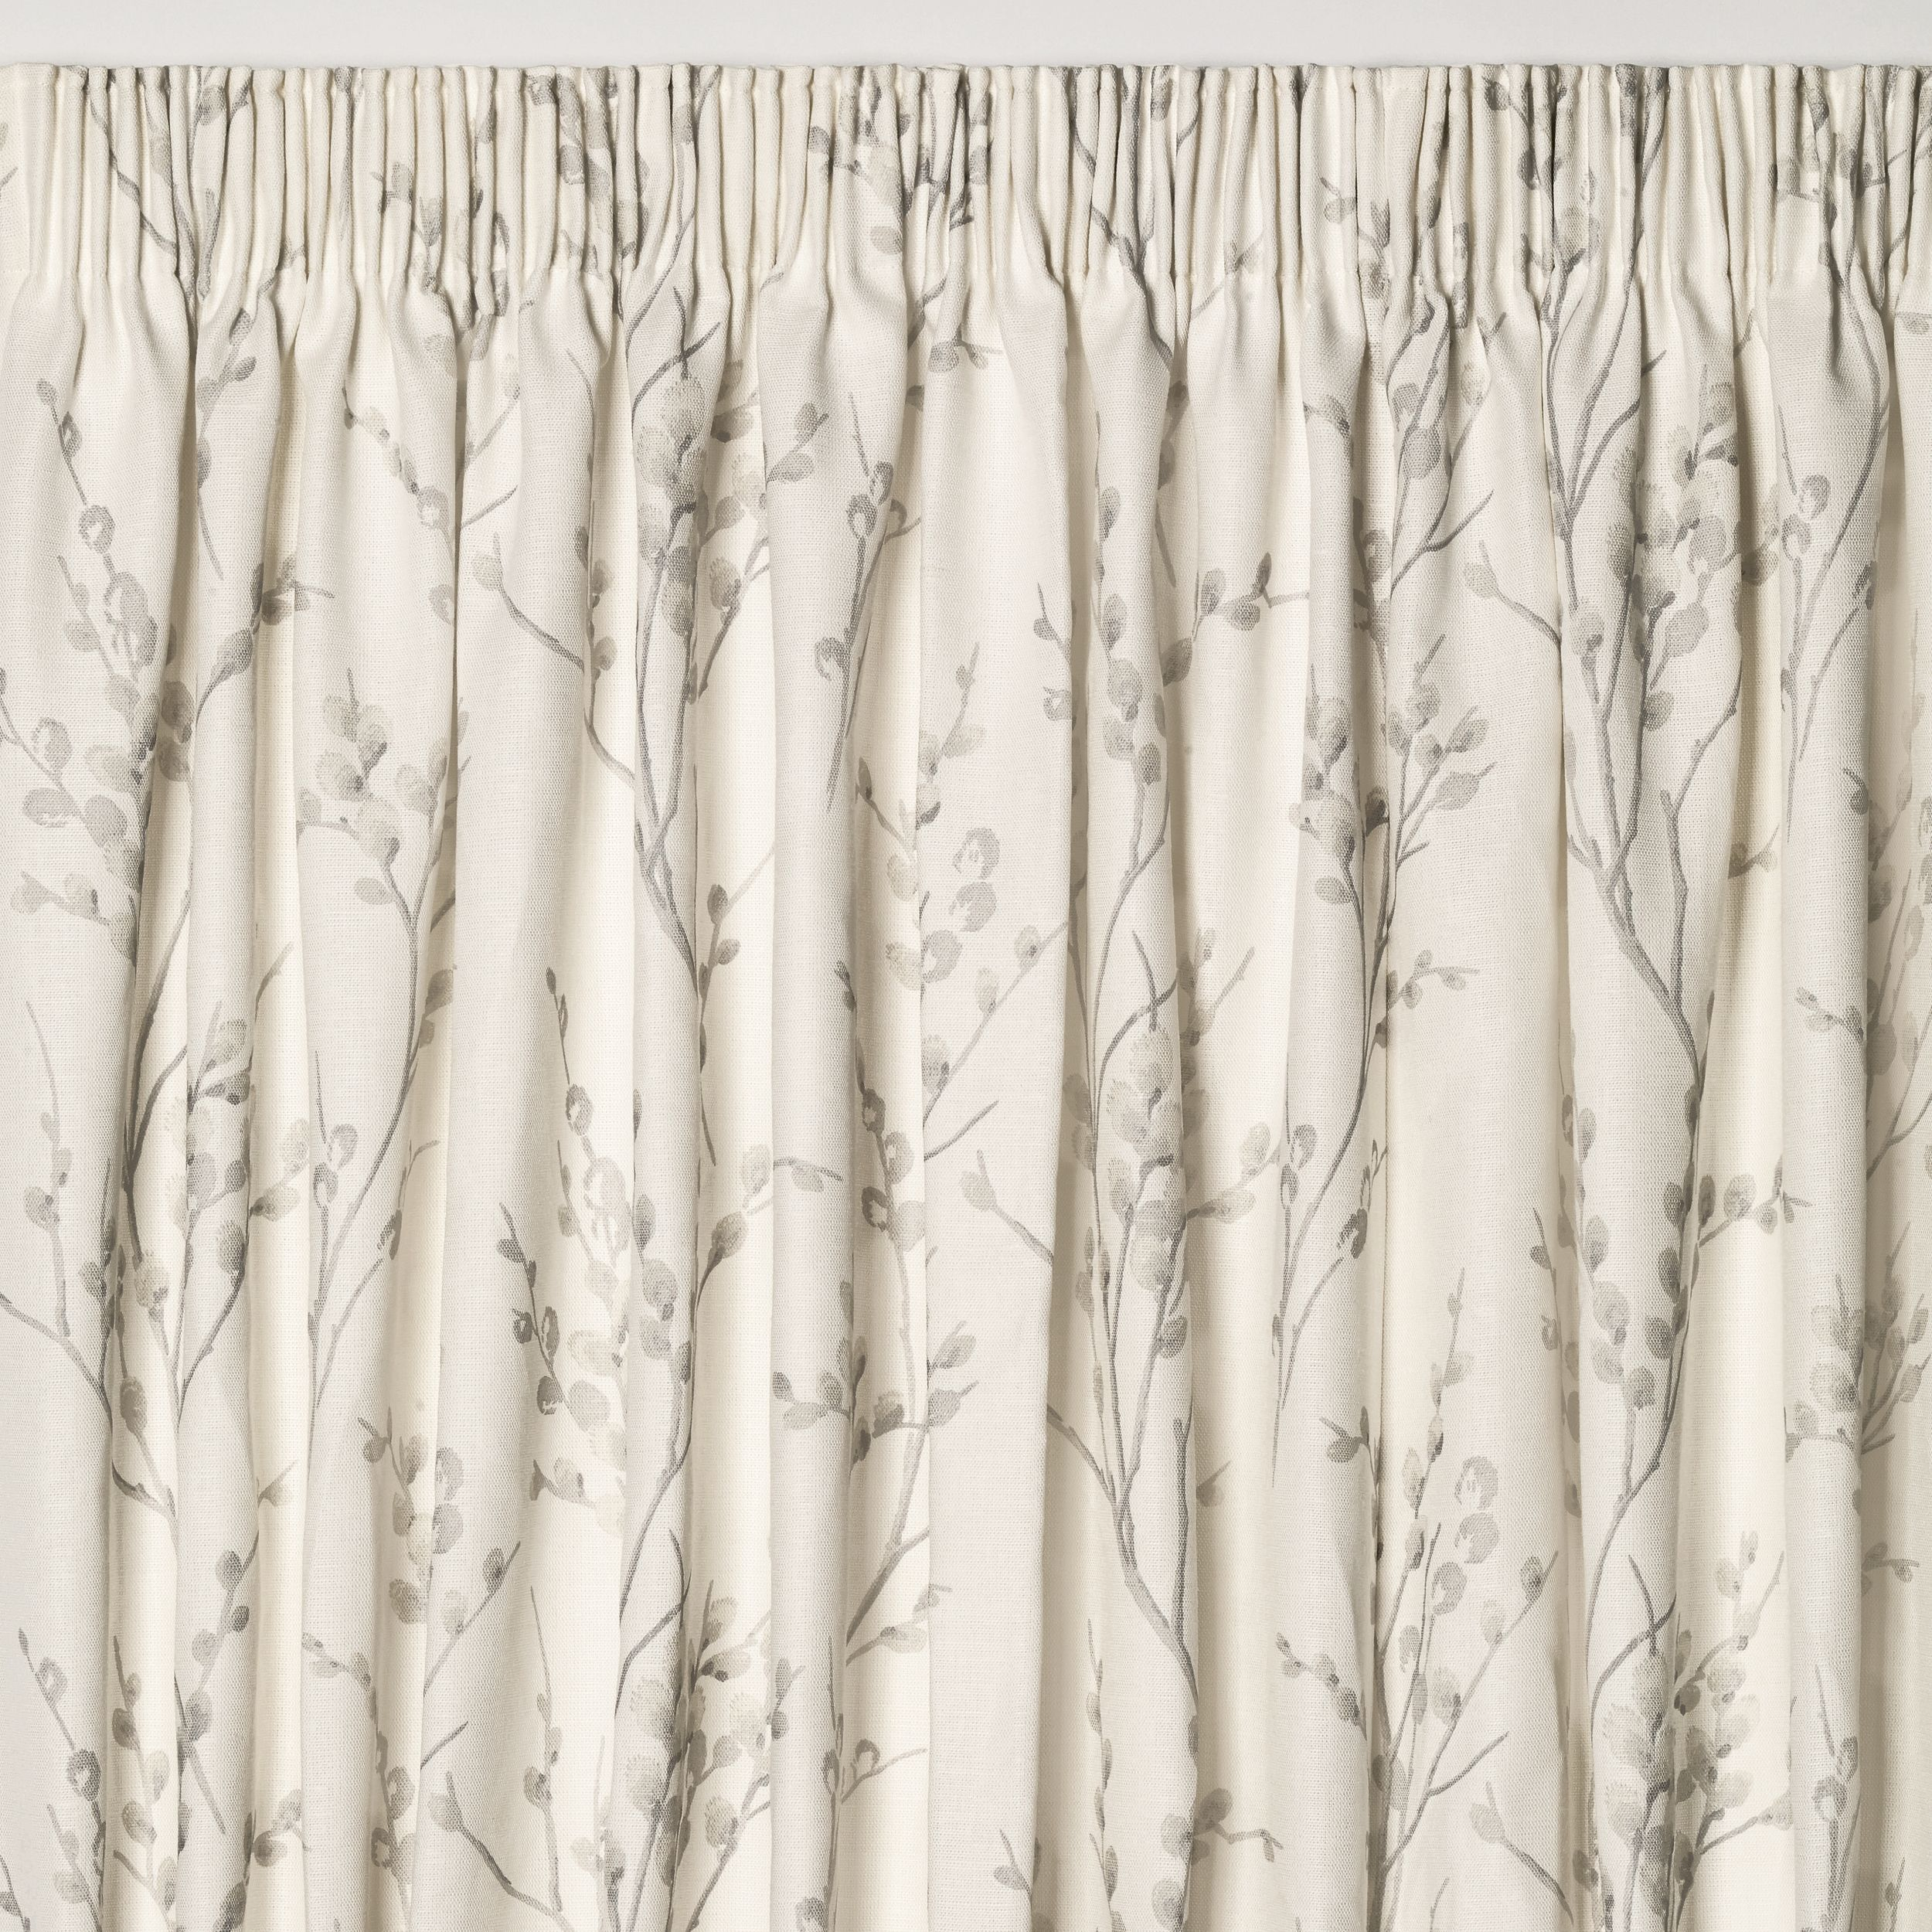 pocket rod print hazy curtains text panels keyword graphic in foggy wayfair leafless sheer patterned weather with set tree branch semi artsy curtain decorations white winter scene